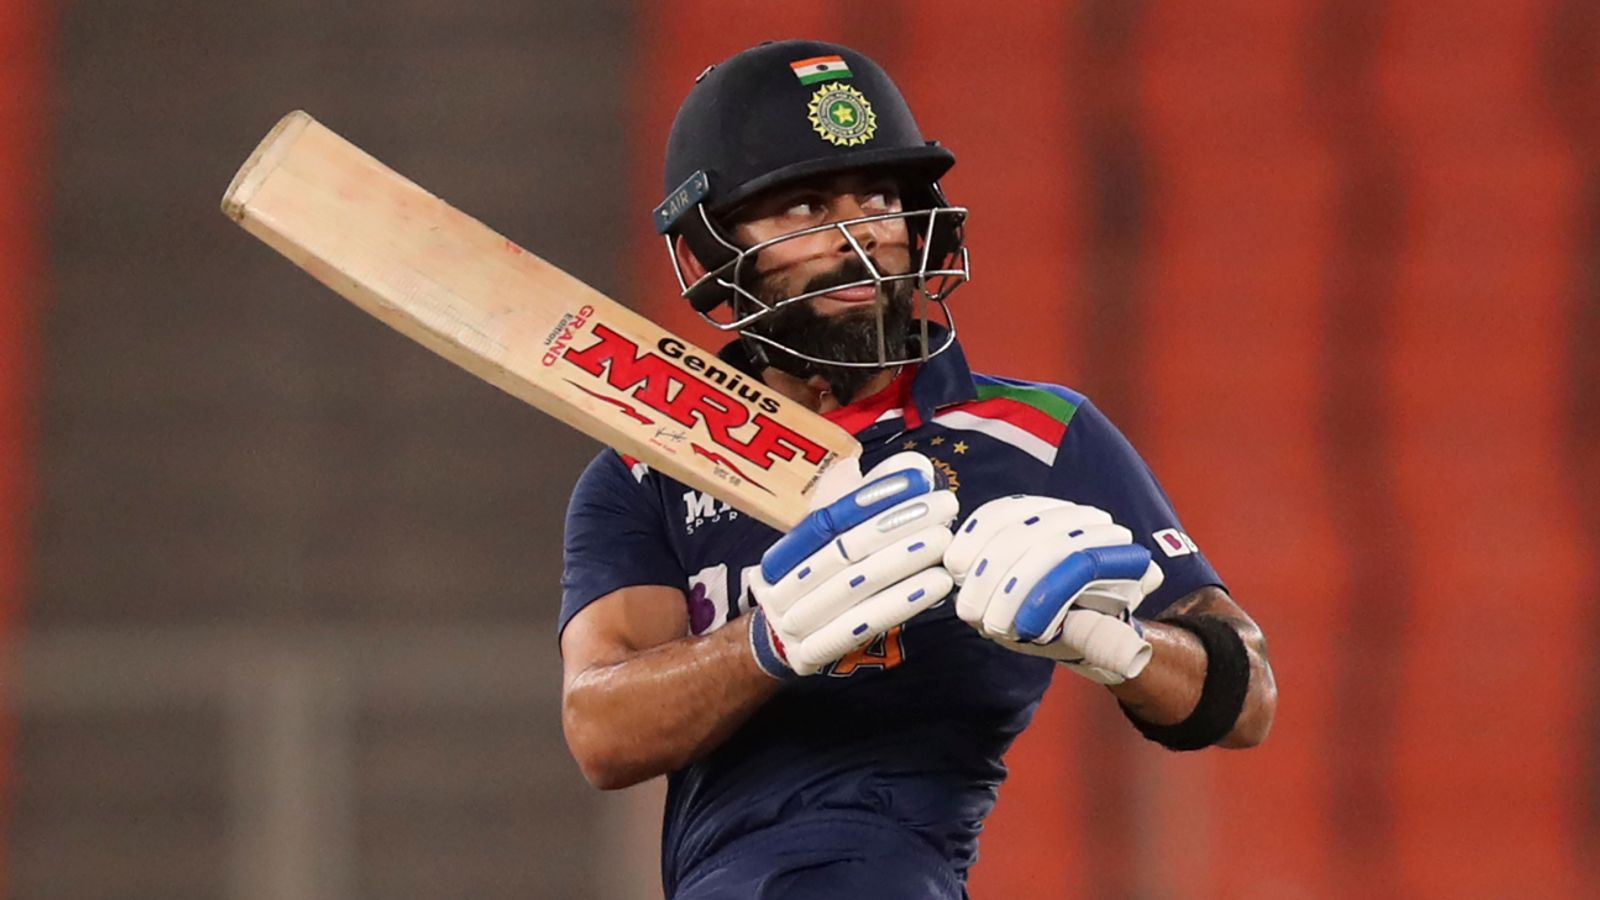 Virat Kohli: India captain eager to proceed as opener in T20 after starring in win over England